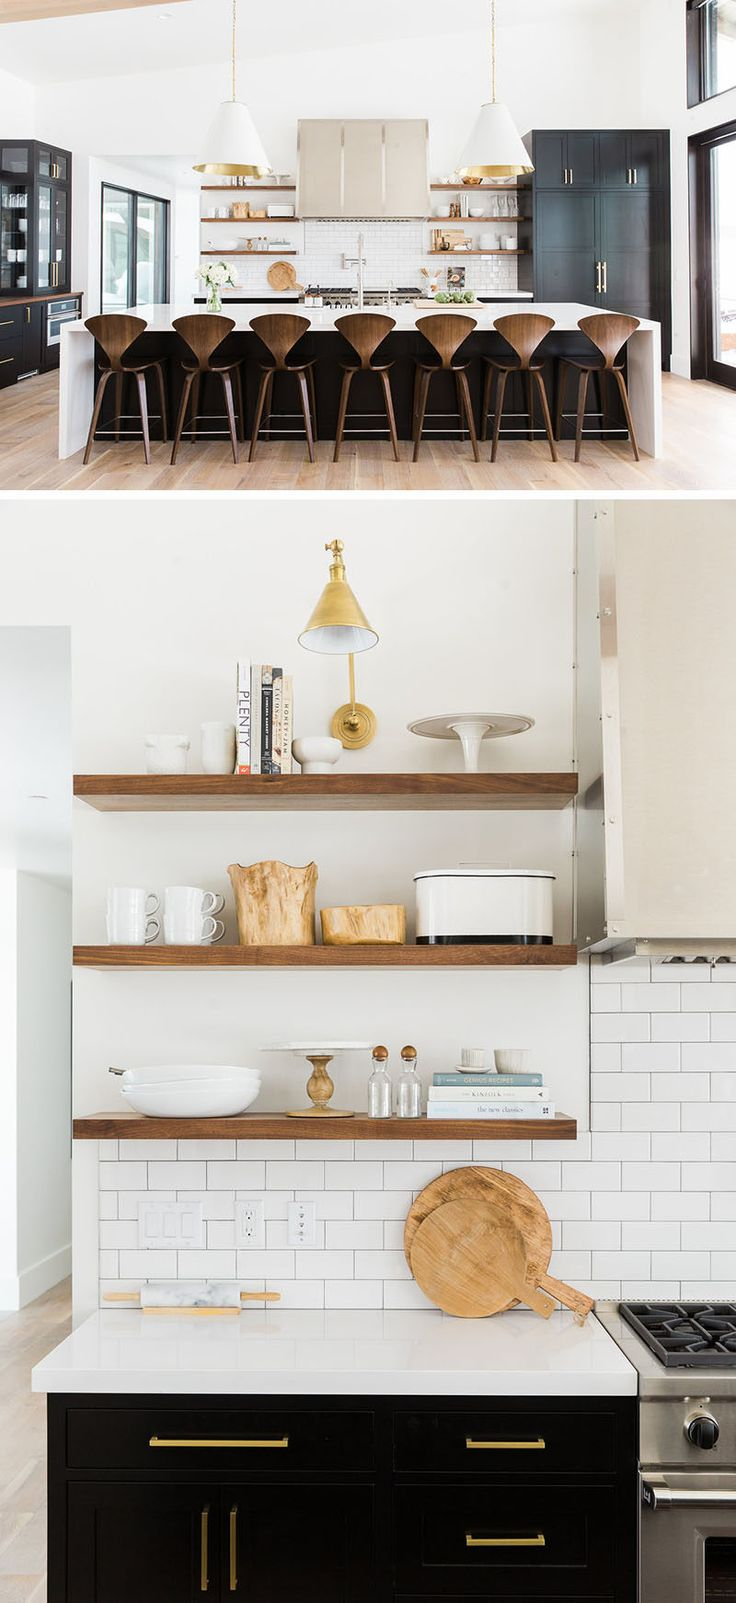 179 Best Open Shelves Images On Pinterest: Best 25+ Open Shelving Ideas On Pinterest